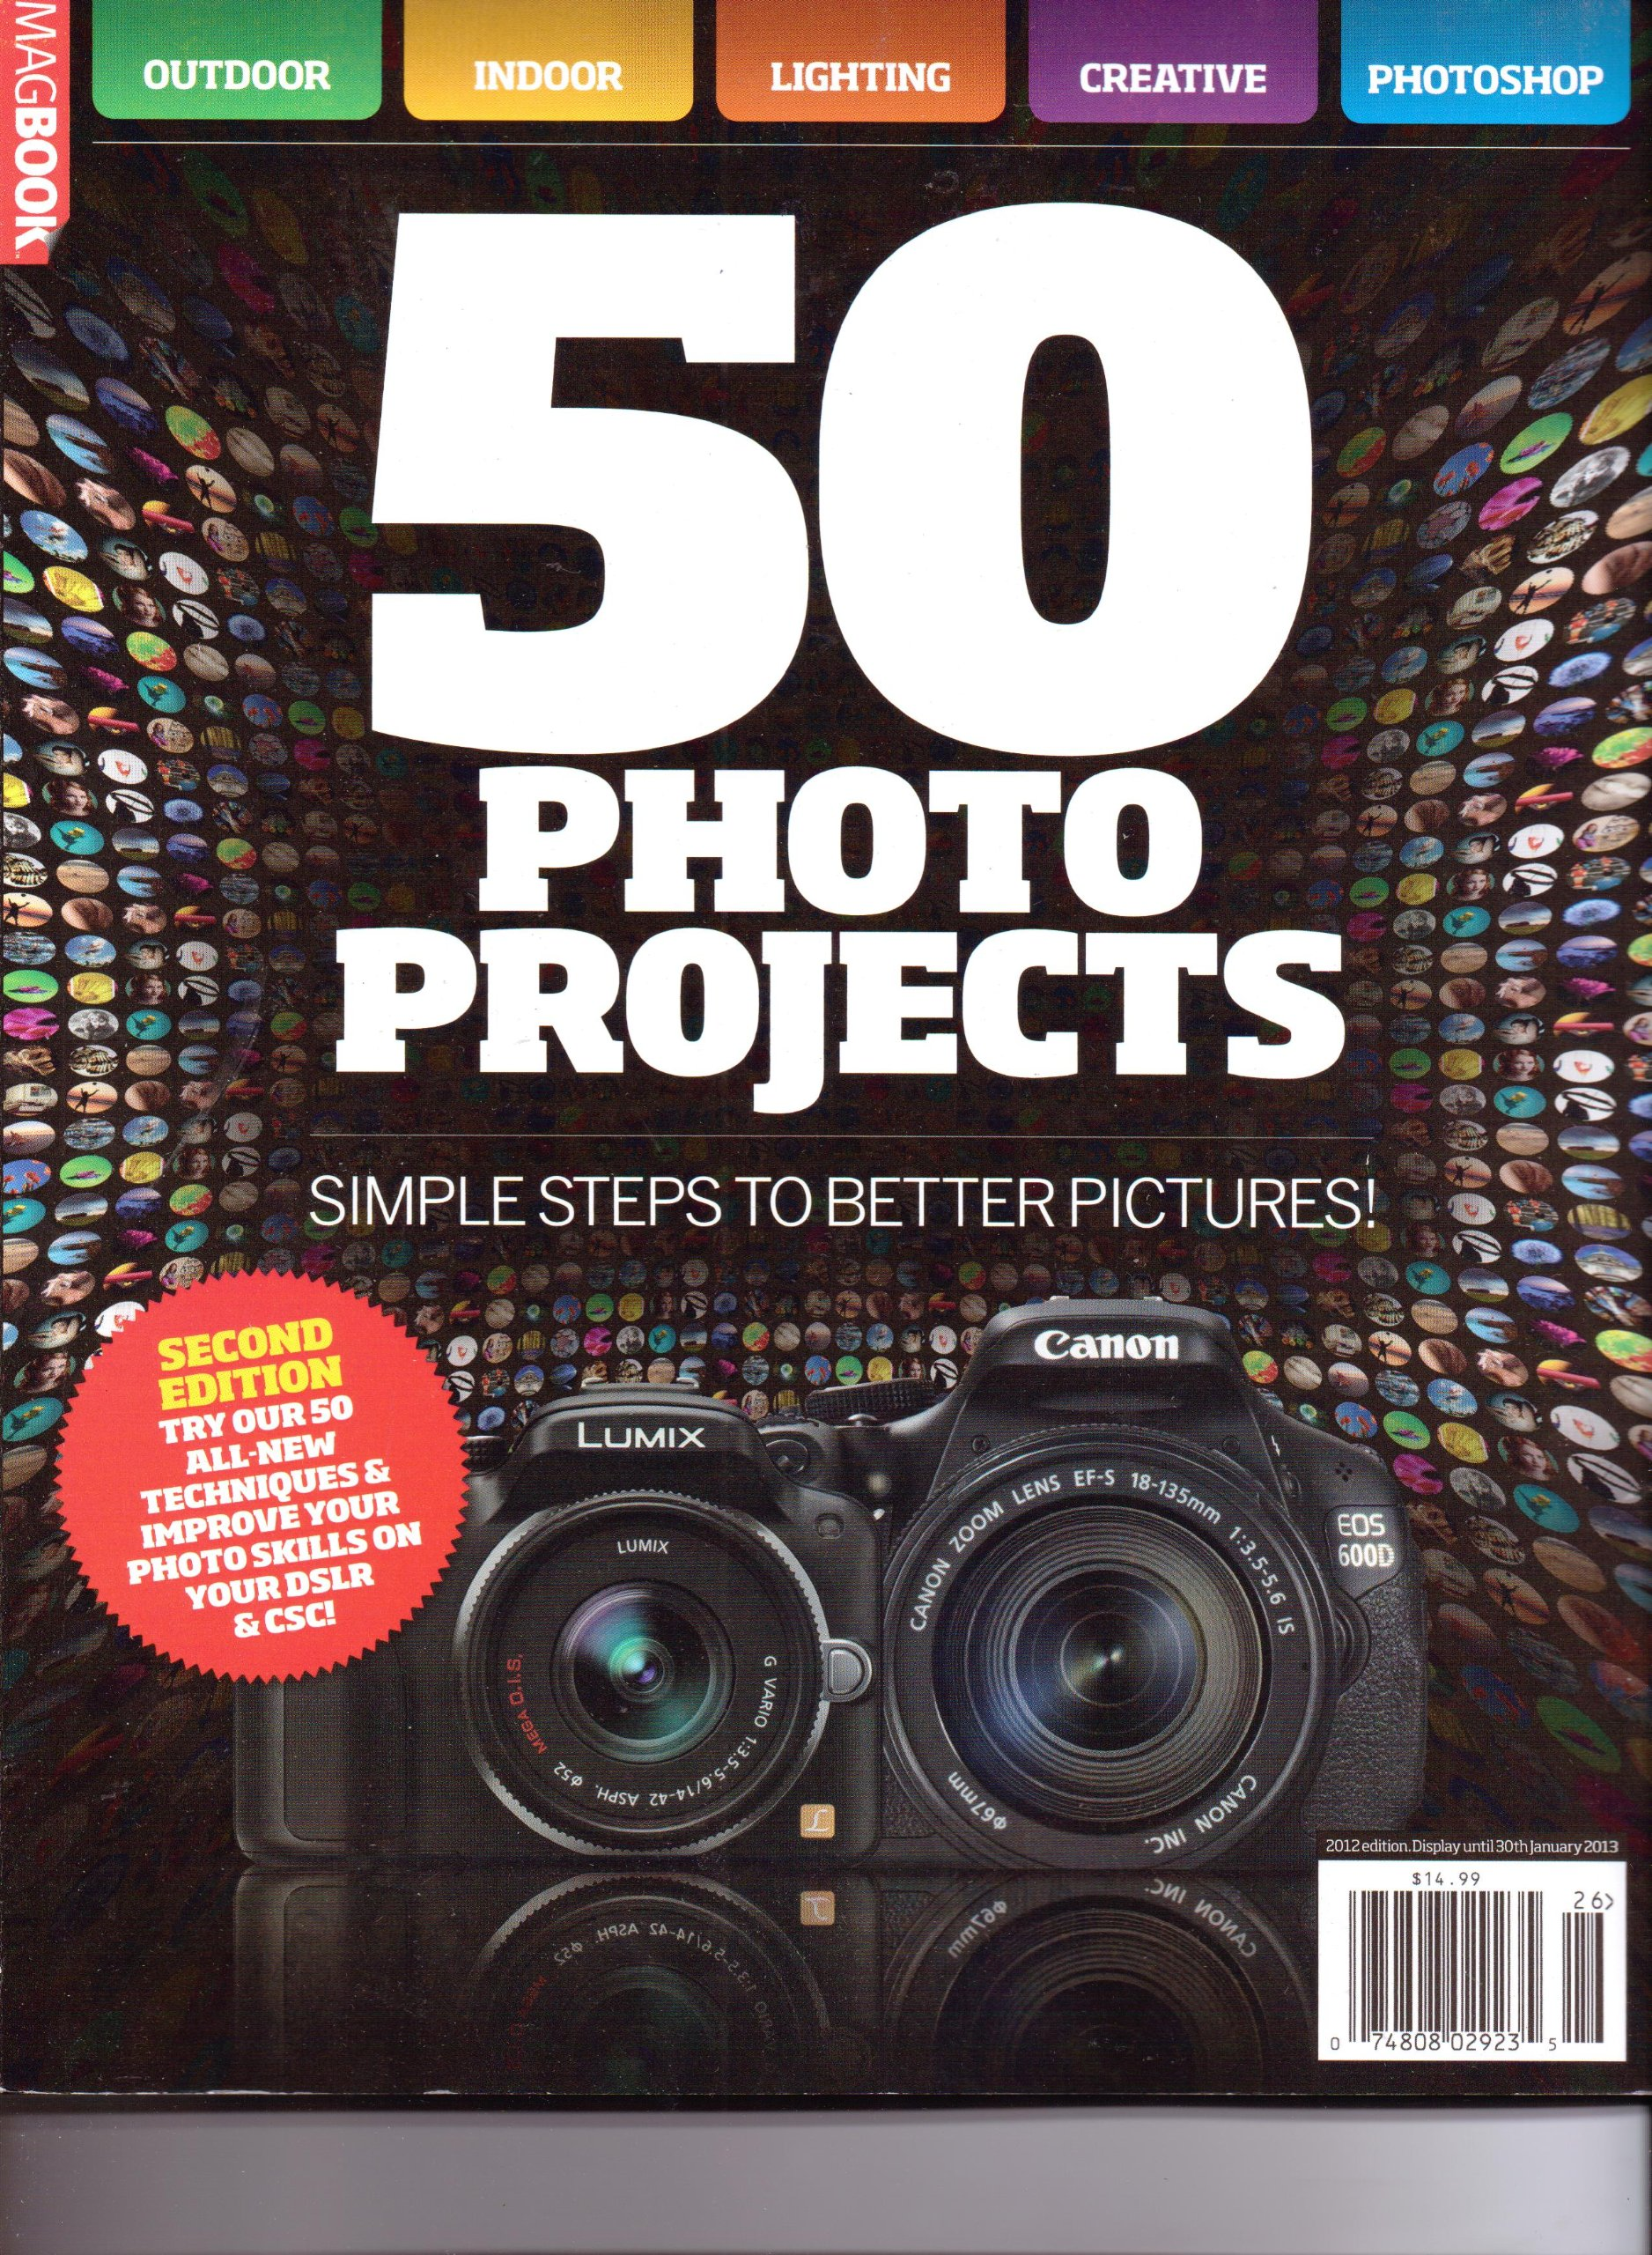 50 PHOTO PROJECTS MagBook. Simple Steps To Better Pictures. 2nd Edition 2012. ebook